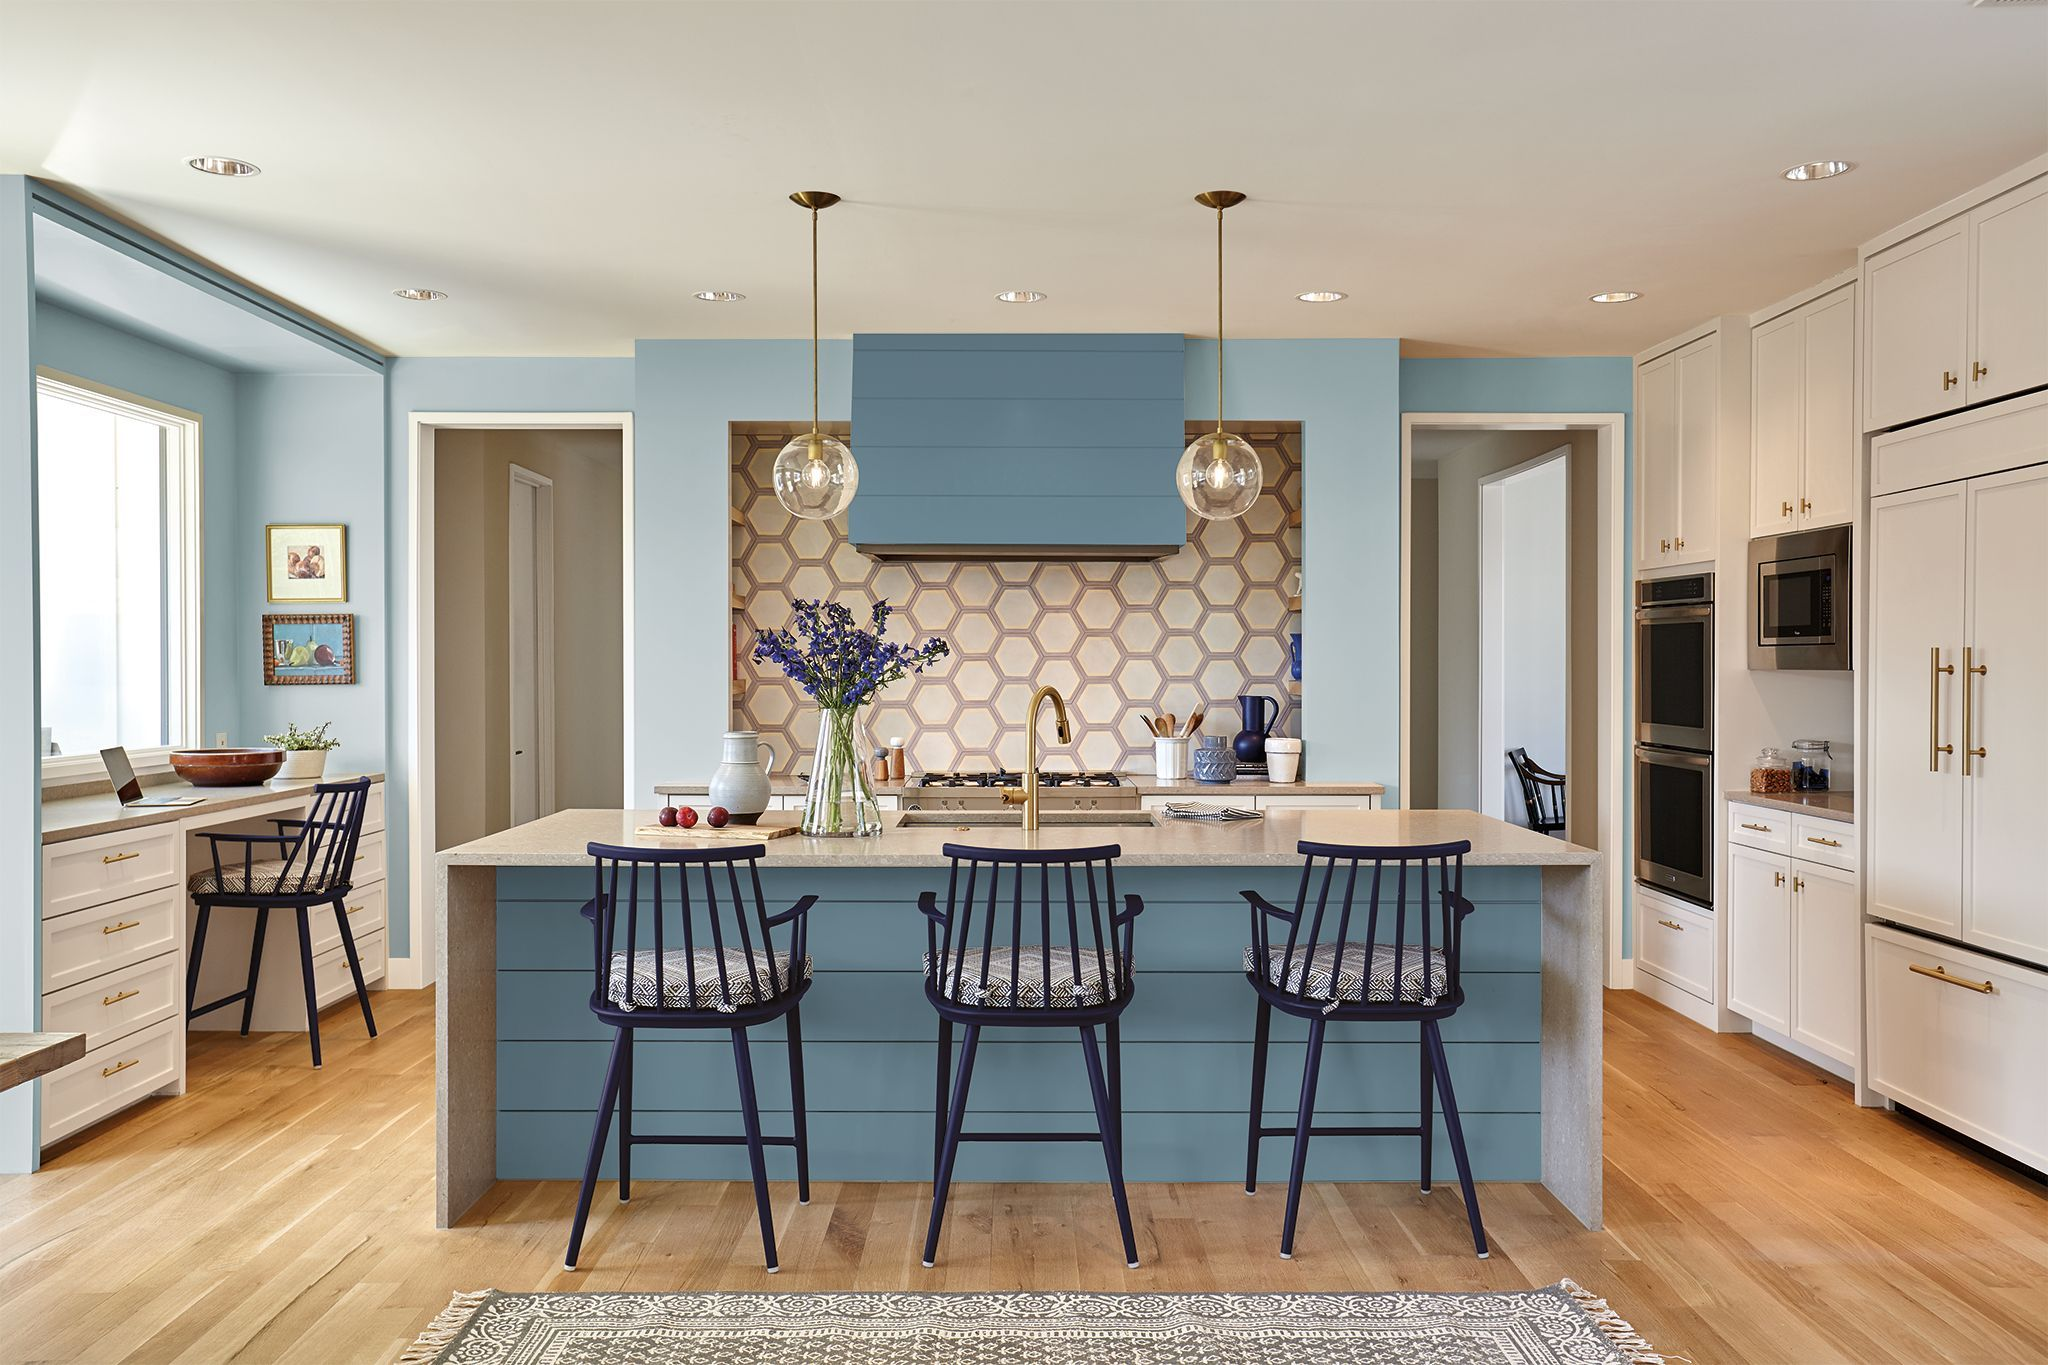 Beau Behr Paint 2019 Color Of The Year